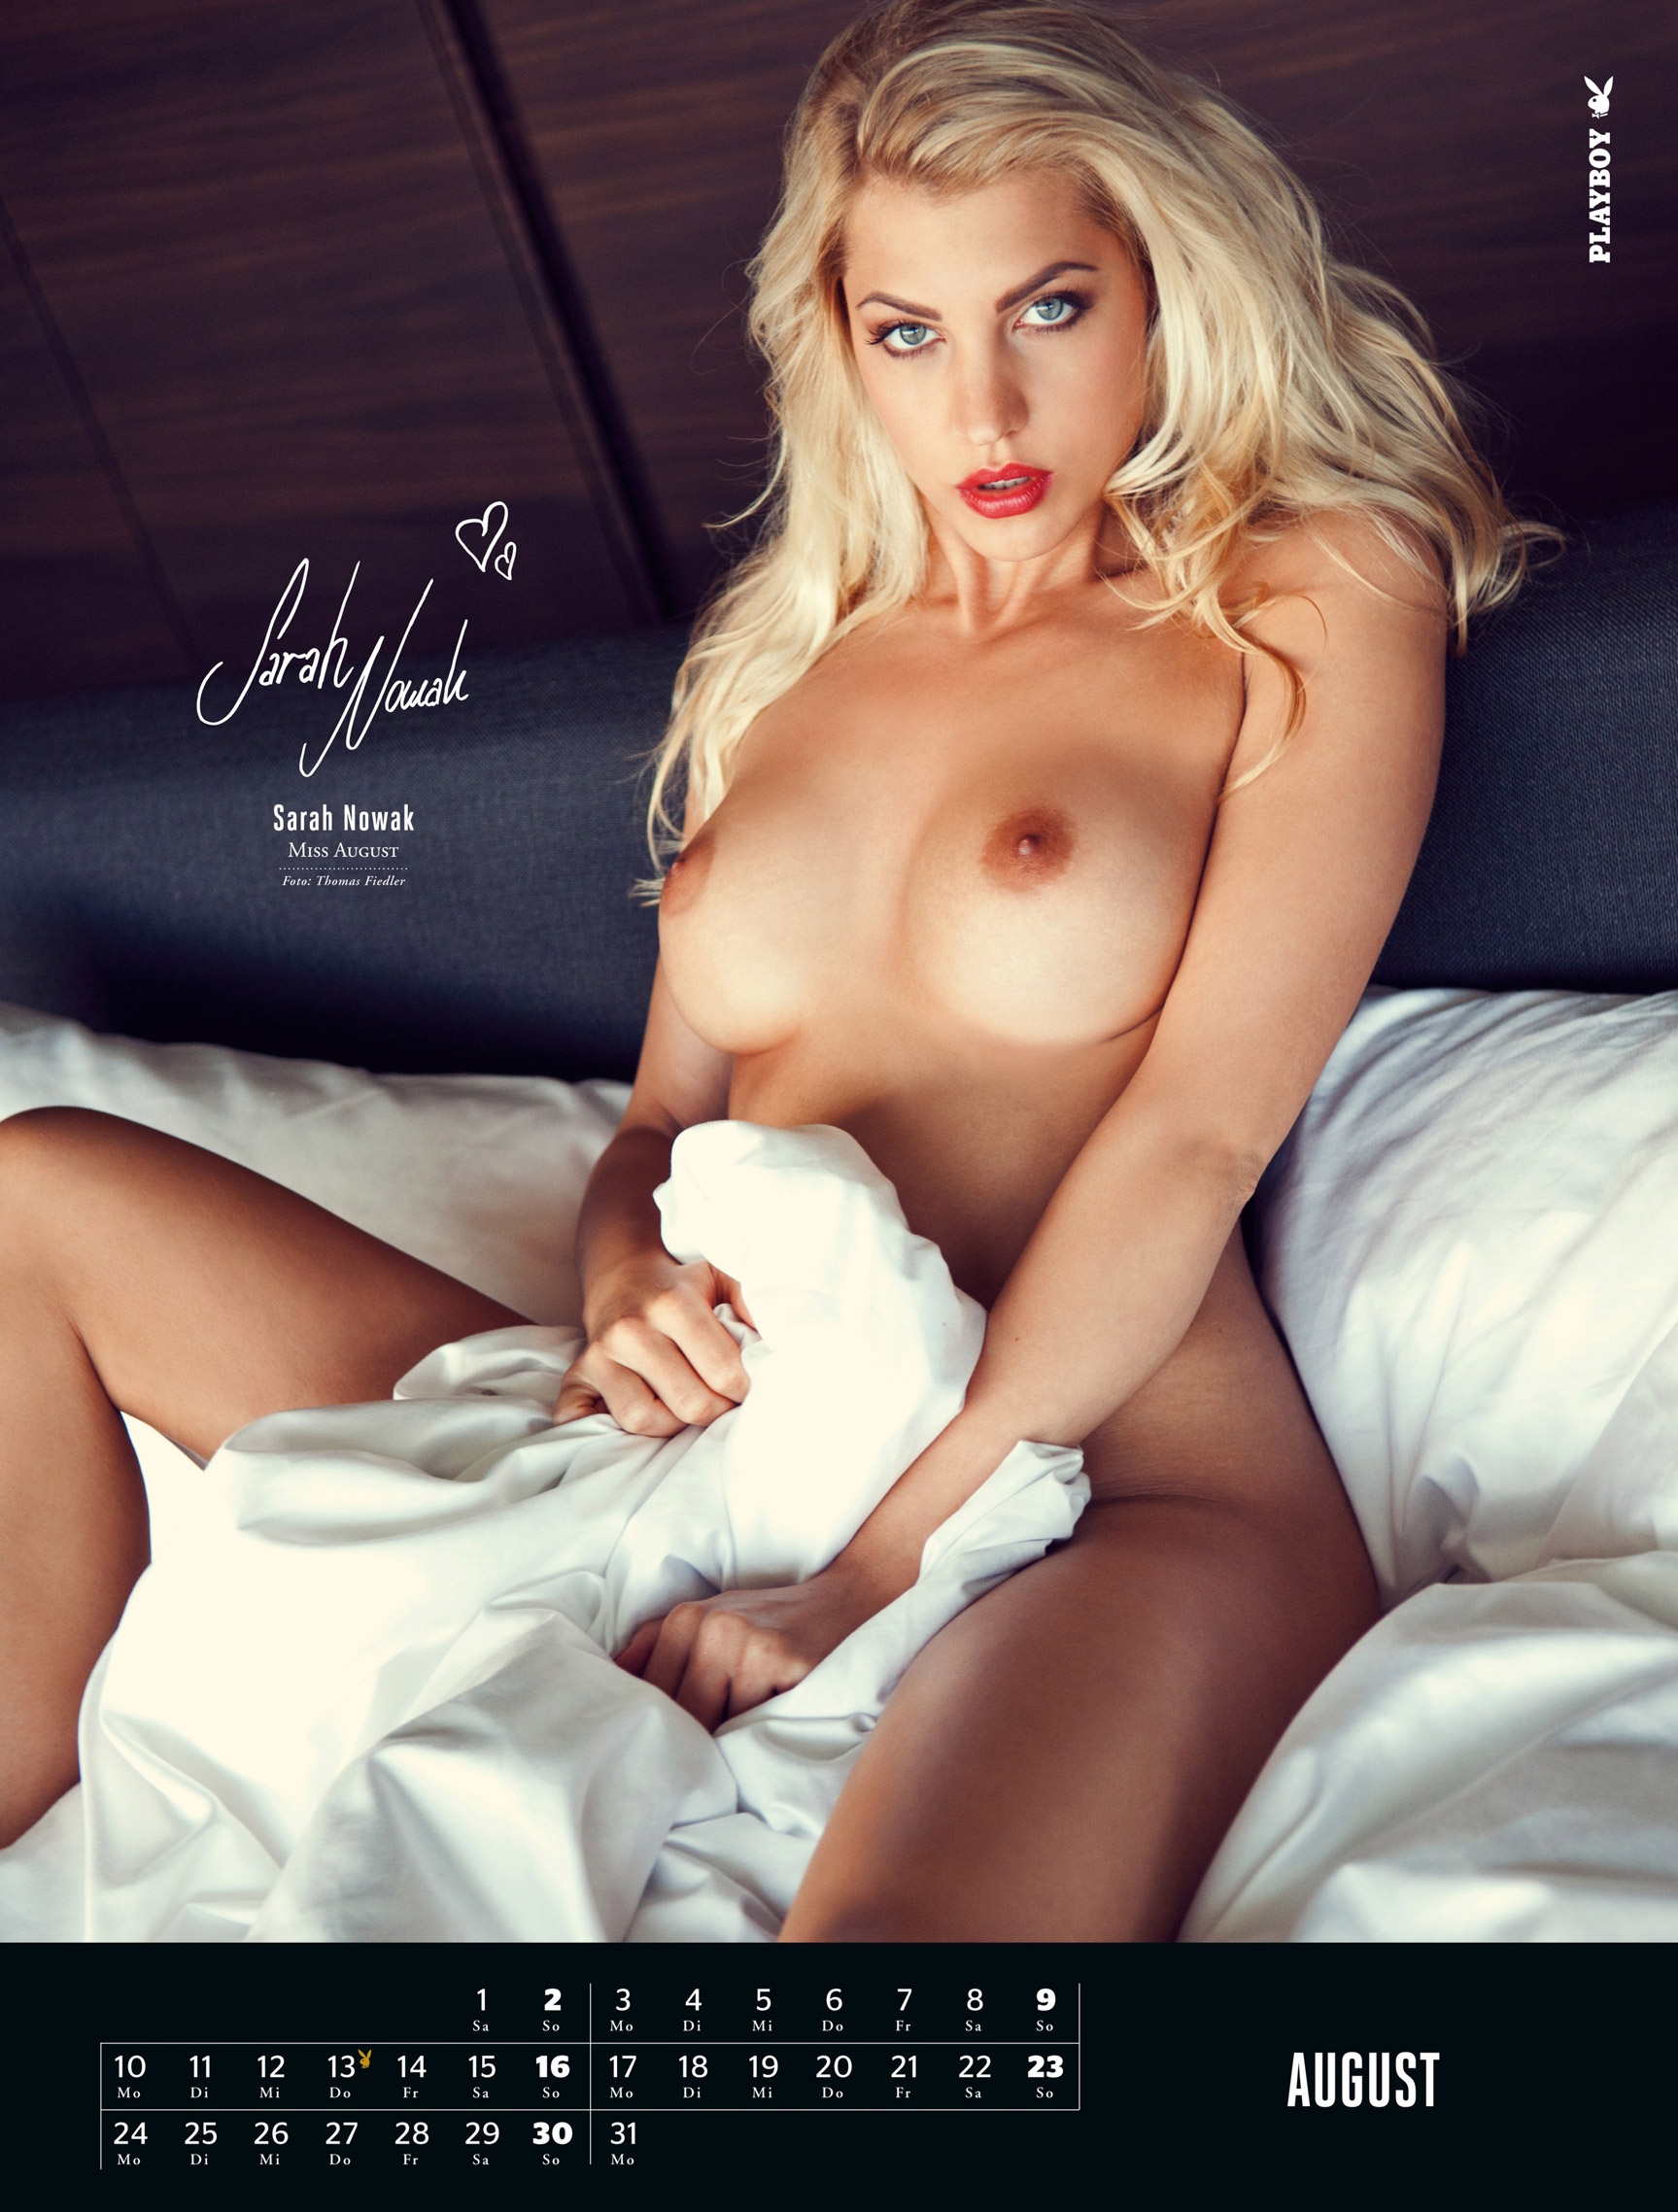 эротический календарь Playboy Germany Playmate Calendar 2015 - Miss August 2014 Sarah Nowak